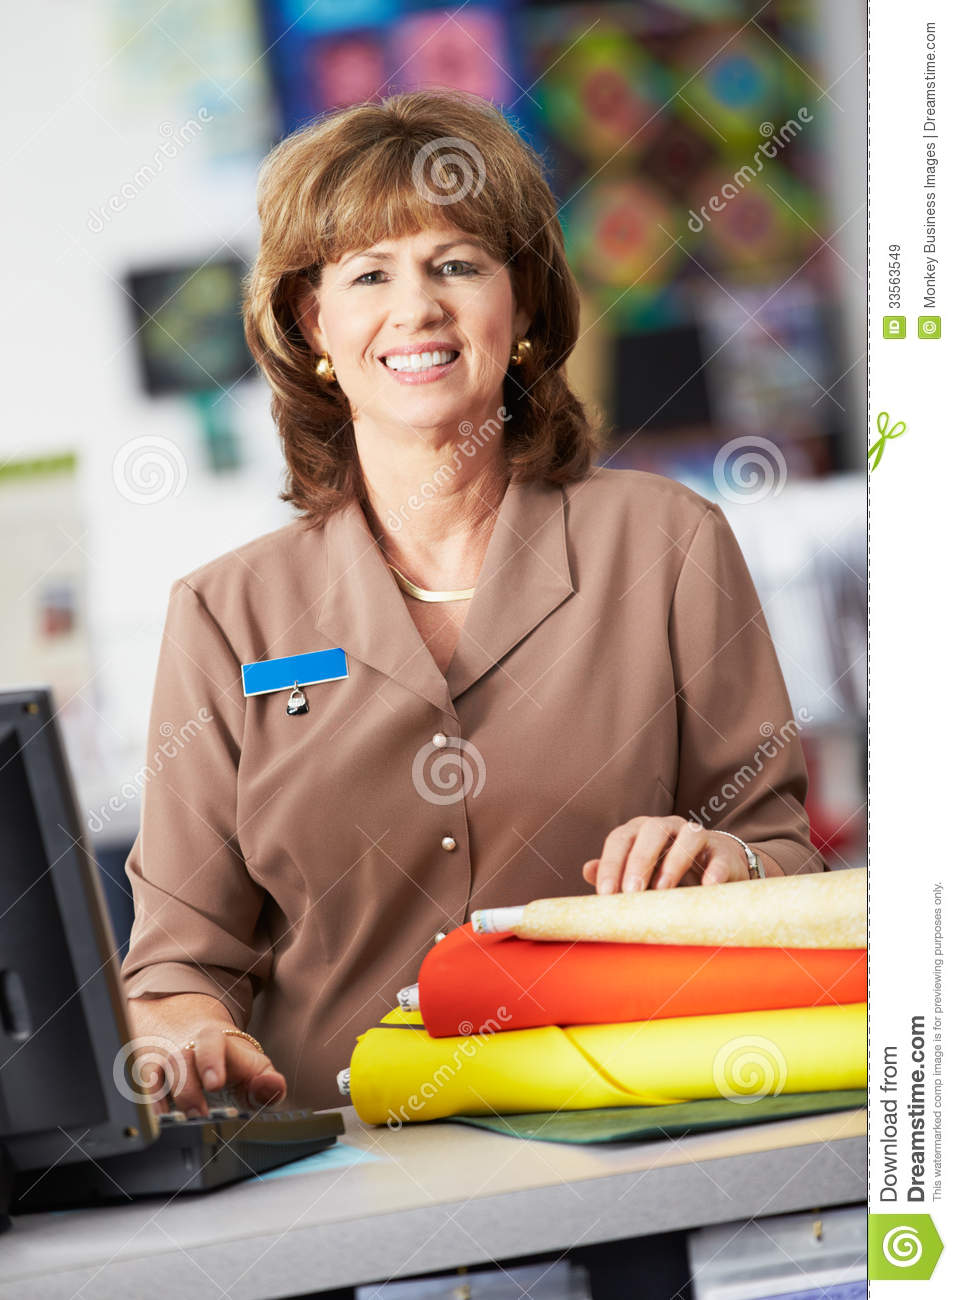 Female Mannequins In Clothing Store. Stock Photo, Picture And